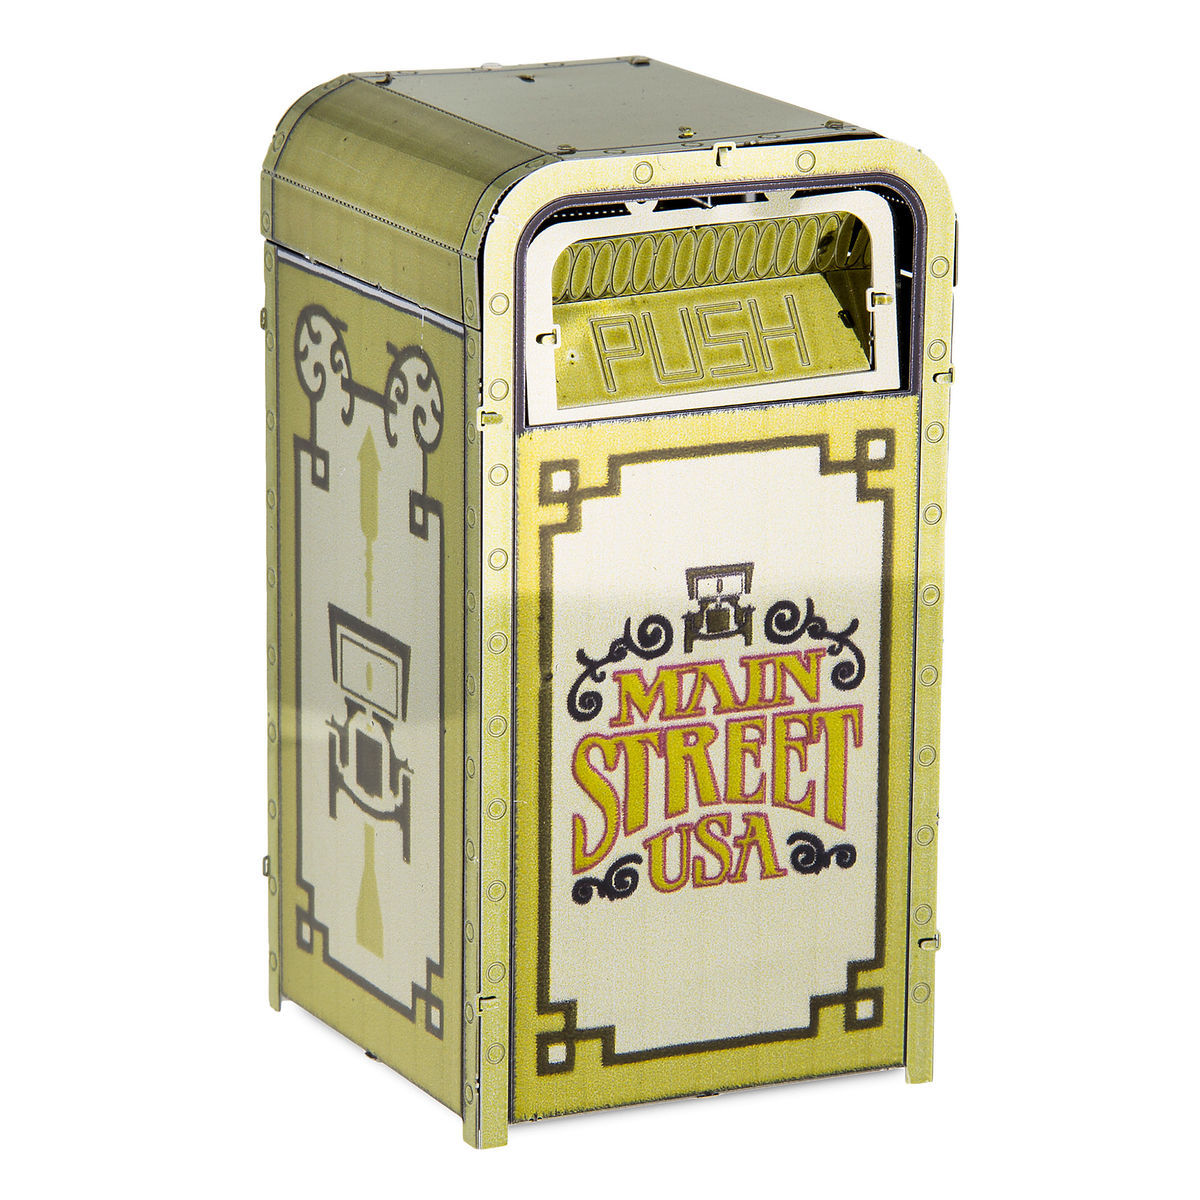 Disney 3D Model Kit - Main Street Trash Can - Metal